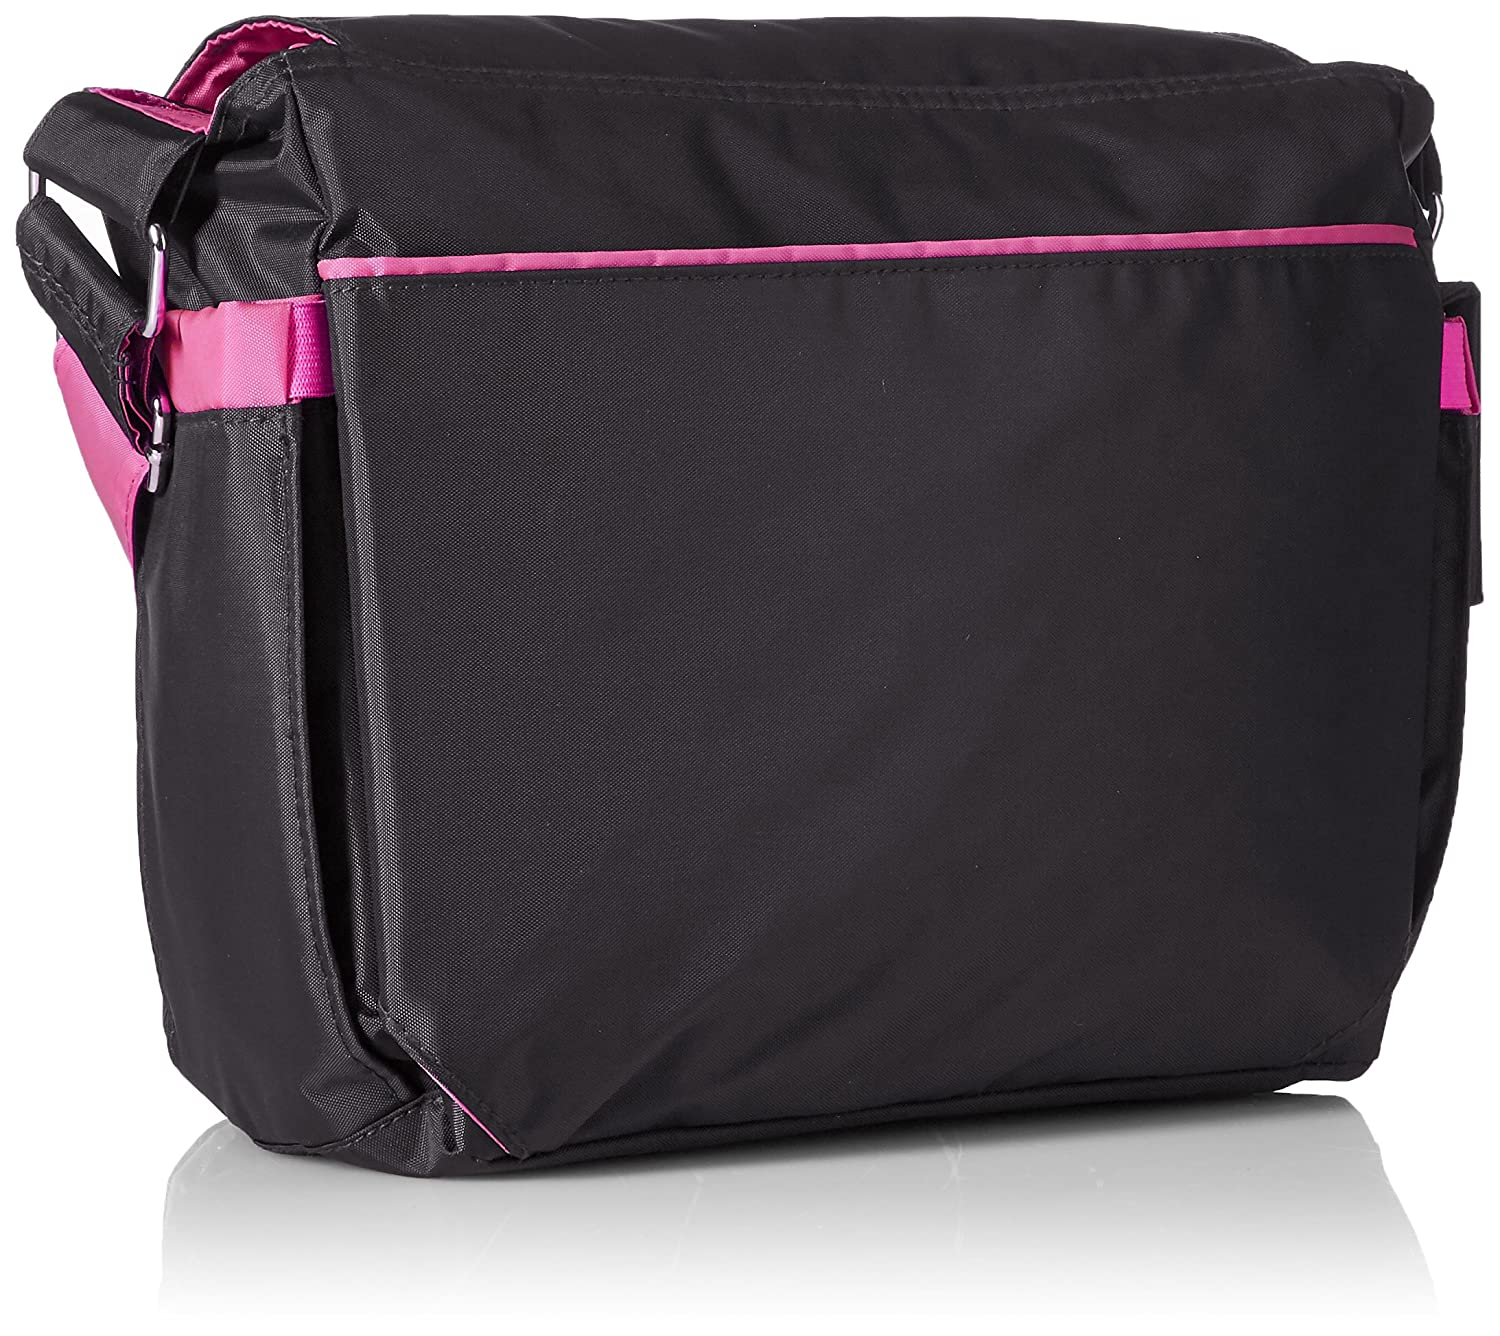 f450237e6b Buy Ah Goo Baby The Grab-And-Go Diaper Bag Java Blush Online at Low Prices  in India - Amazon.in